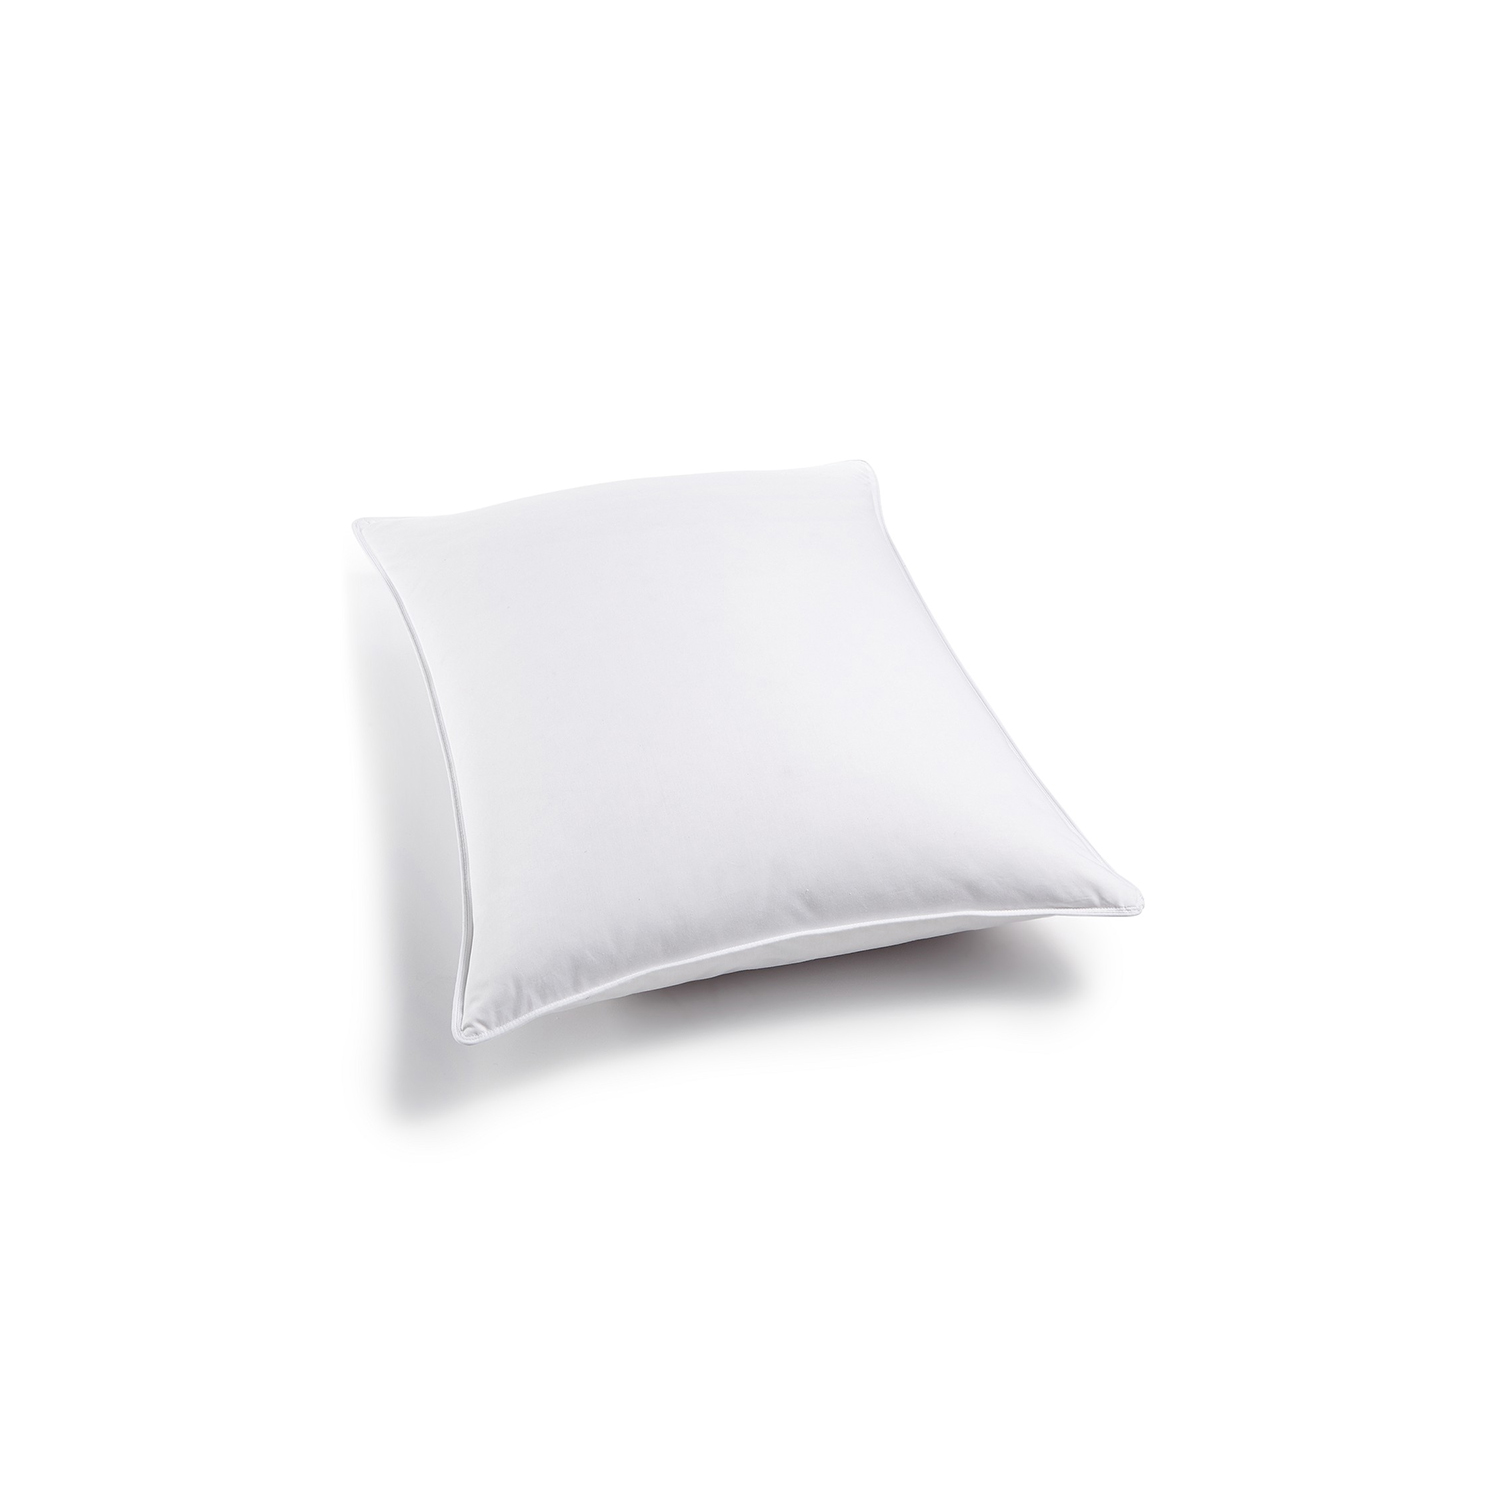 Hotel Collection White Down Pillow: 45% Off